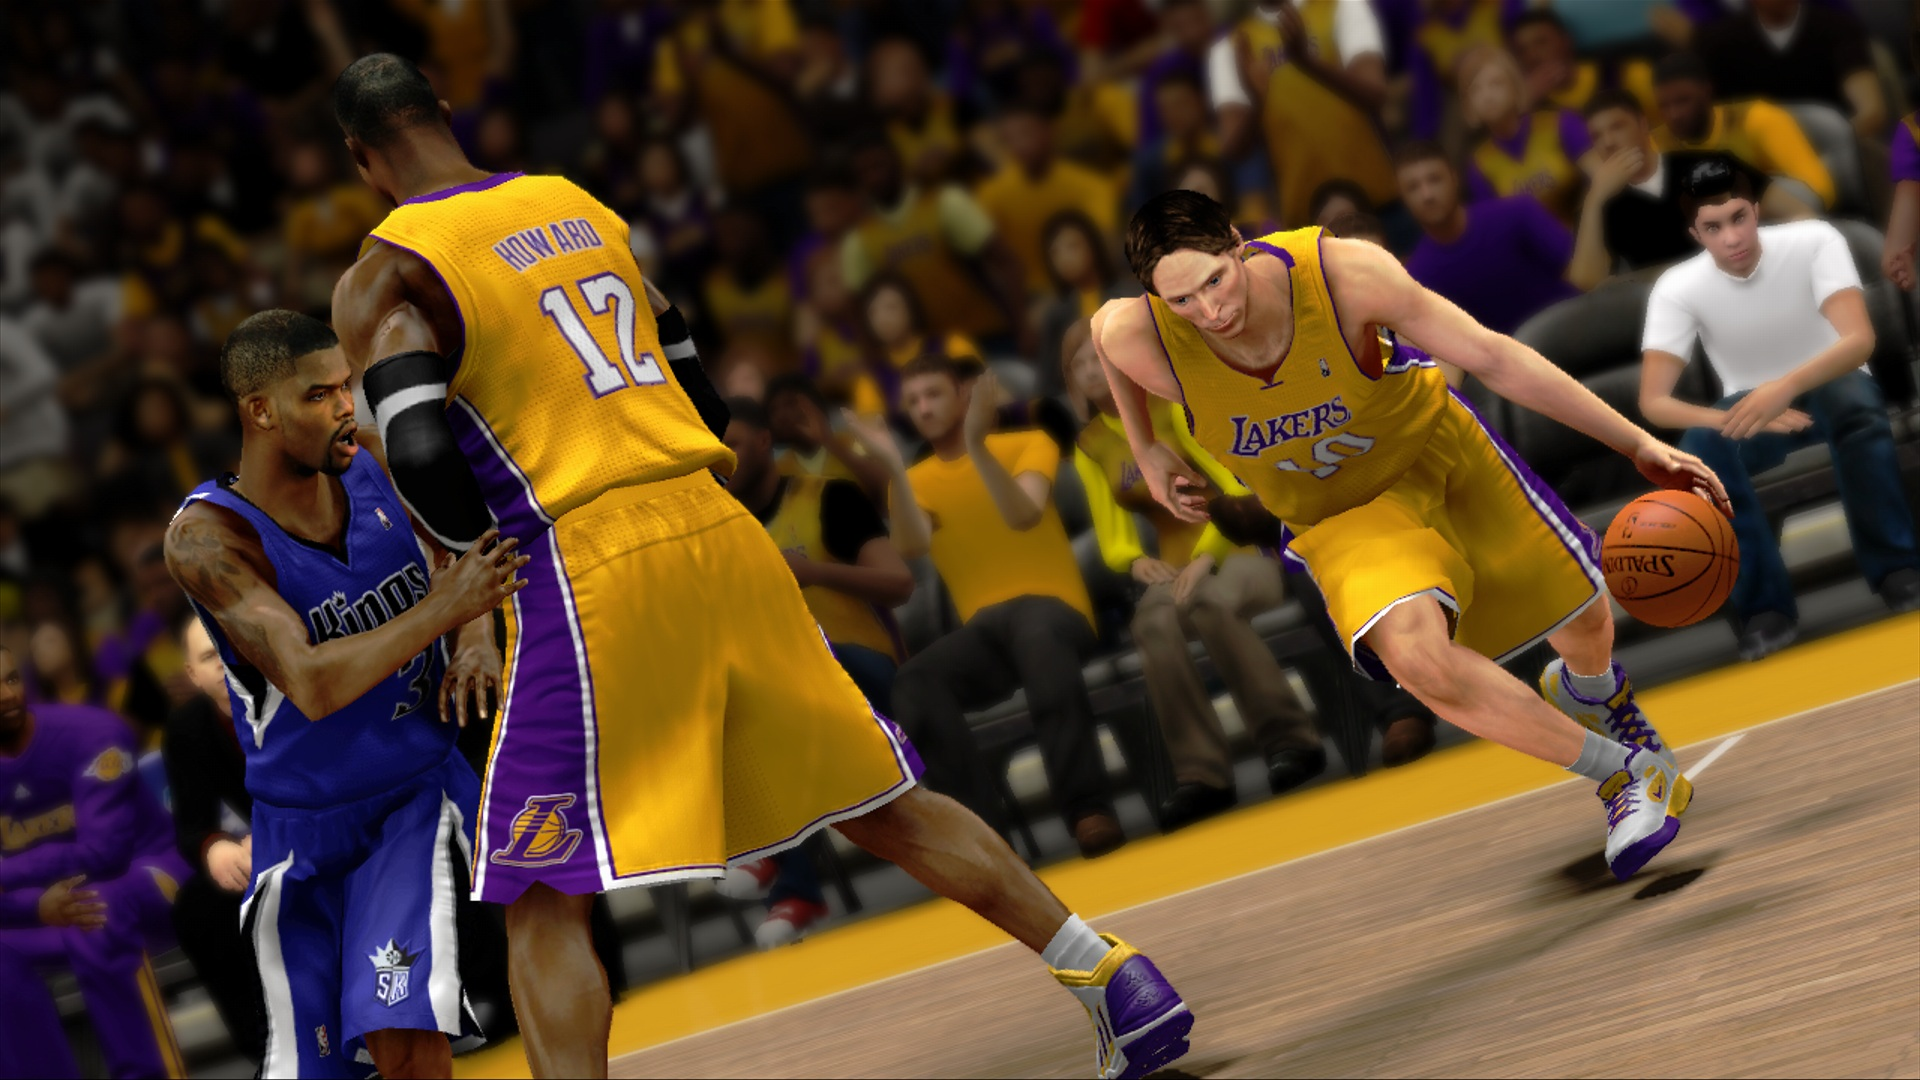 nba 2k13 full version free download